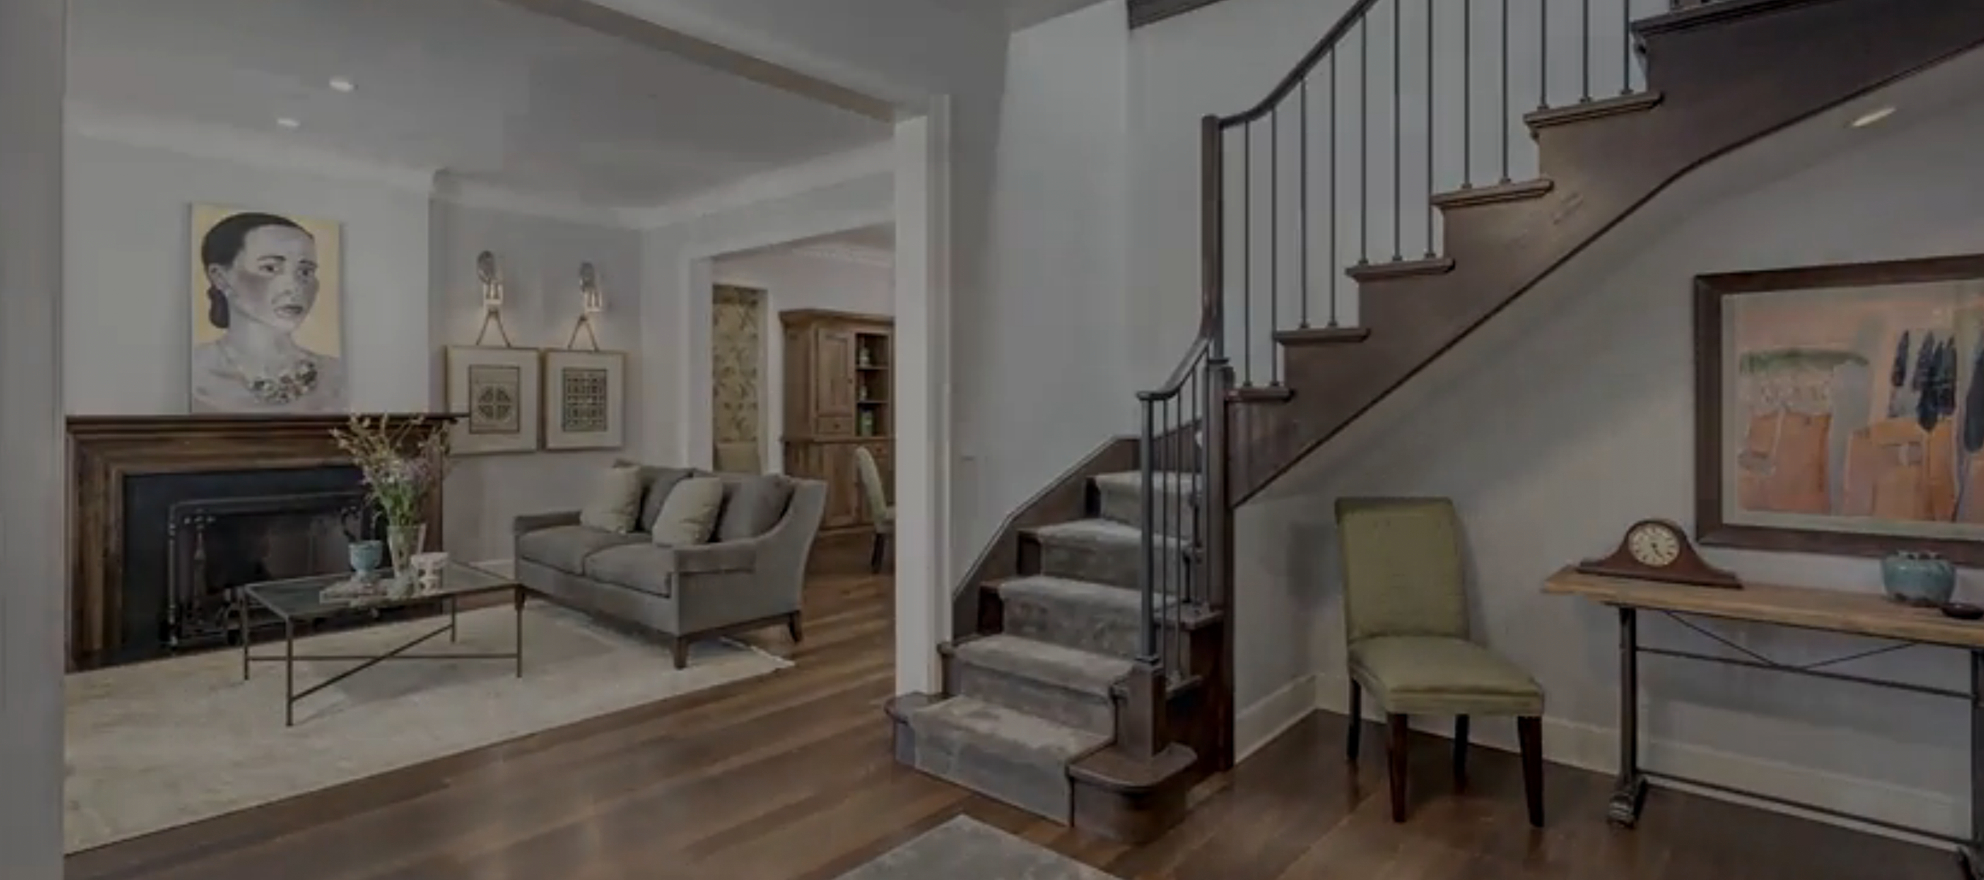 Listing video: 1891 West Lakeview home